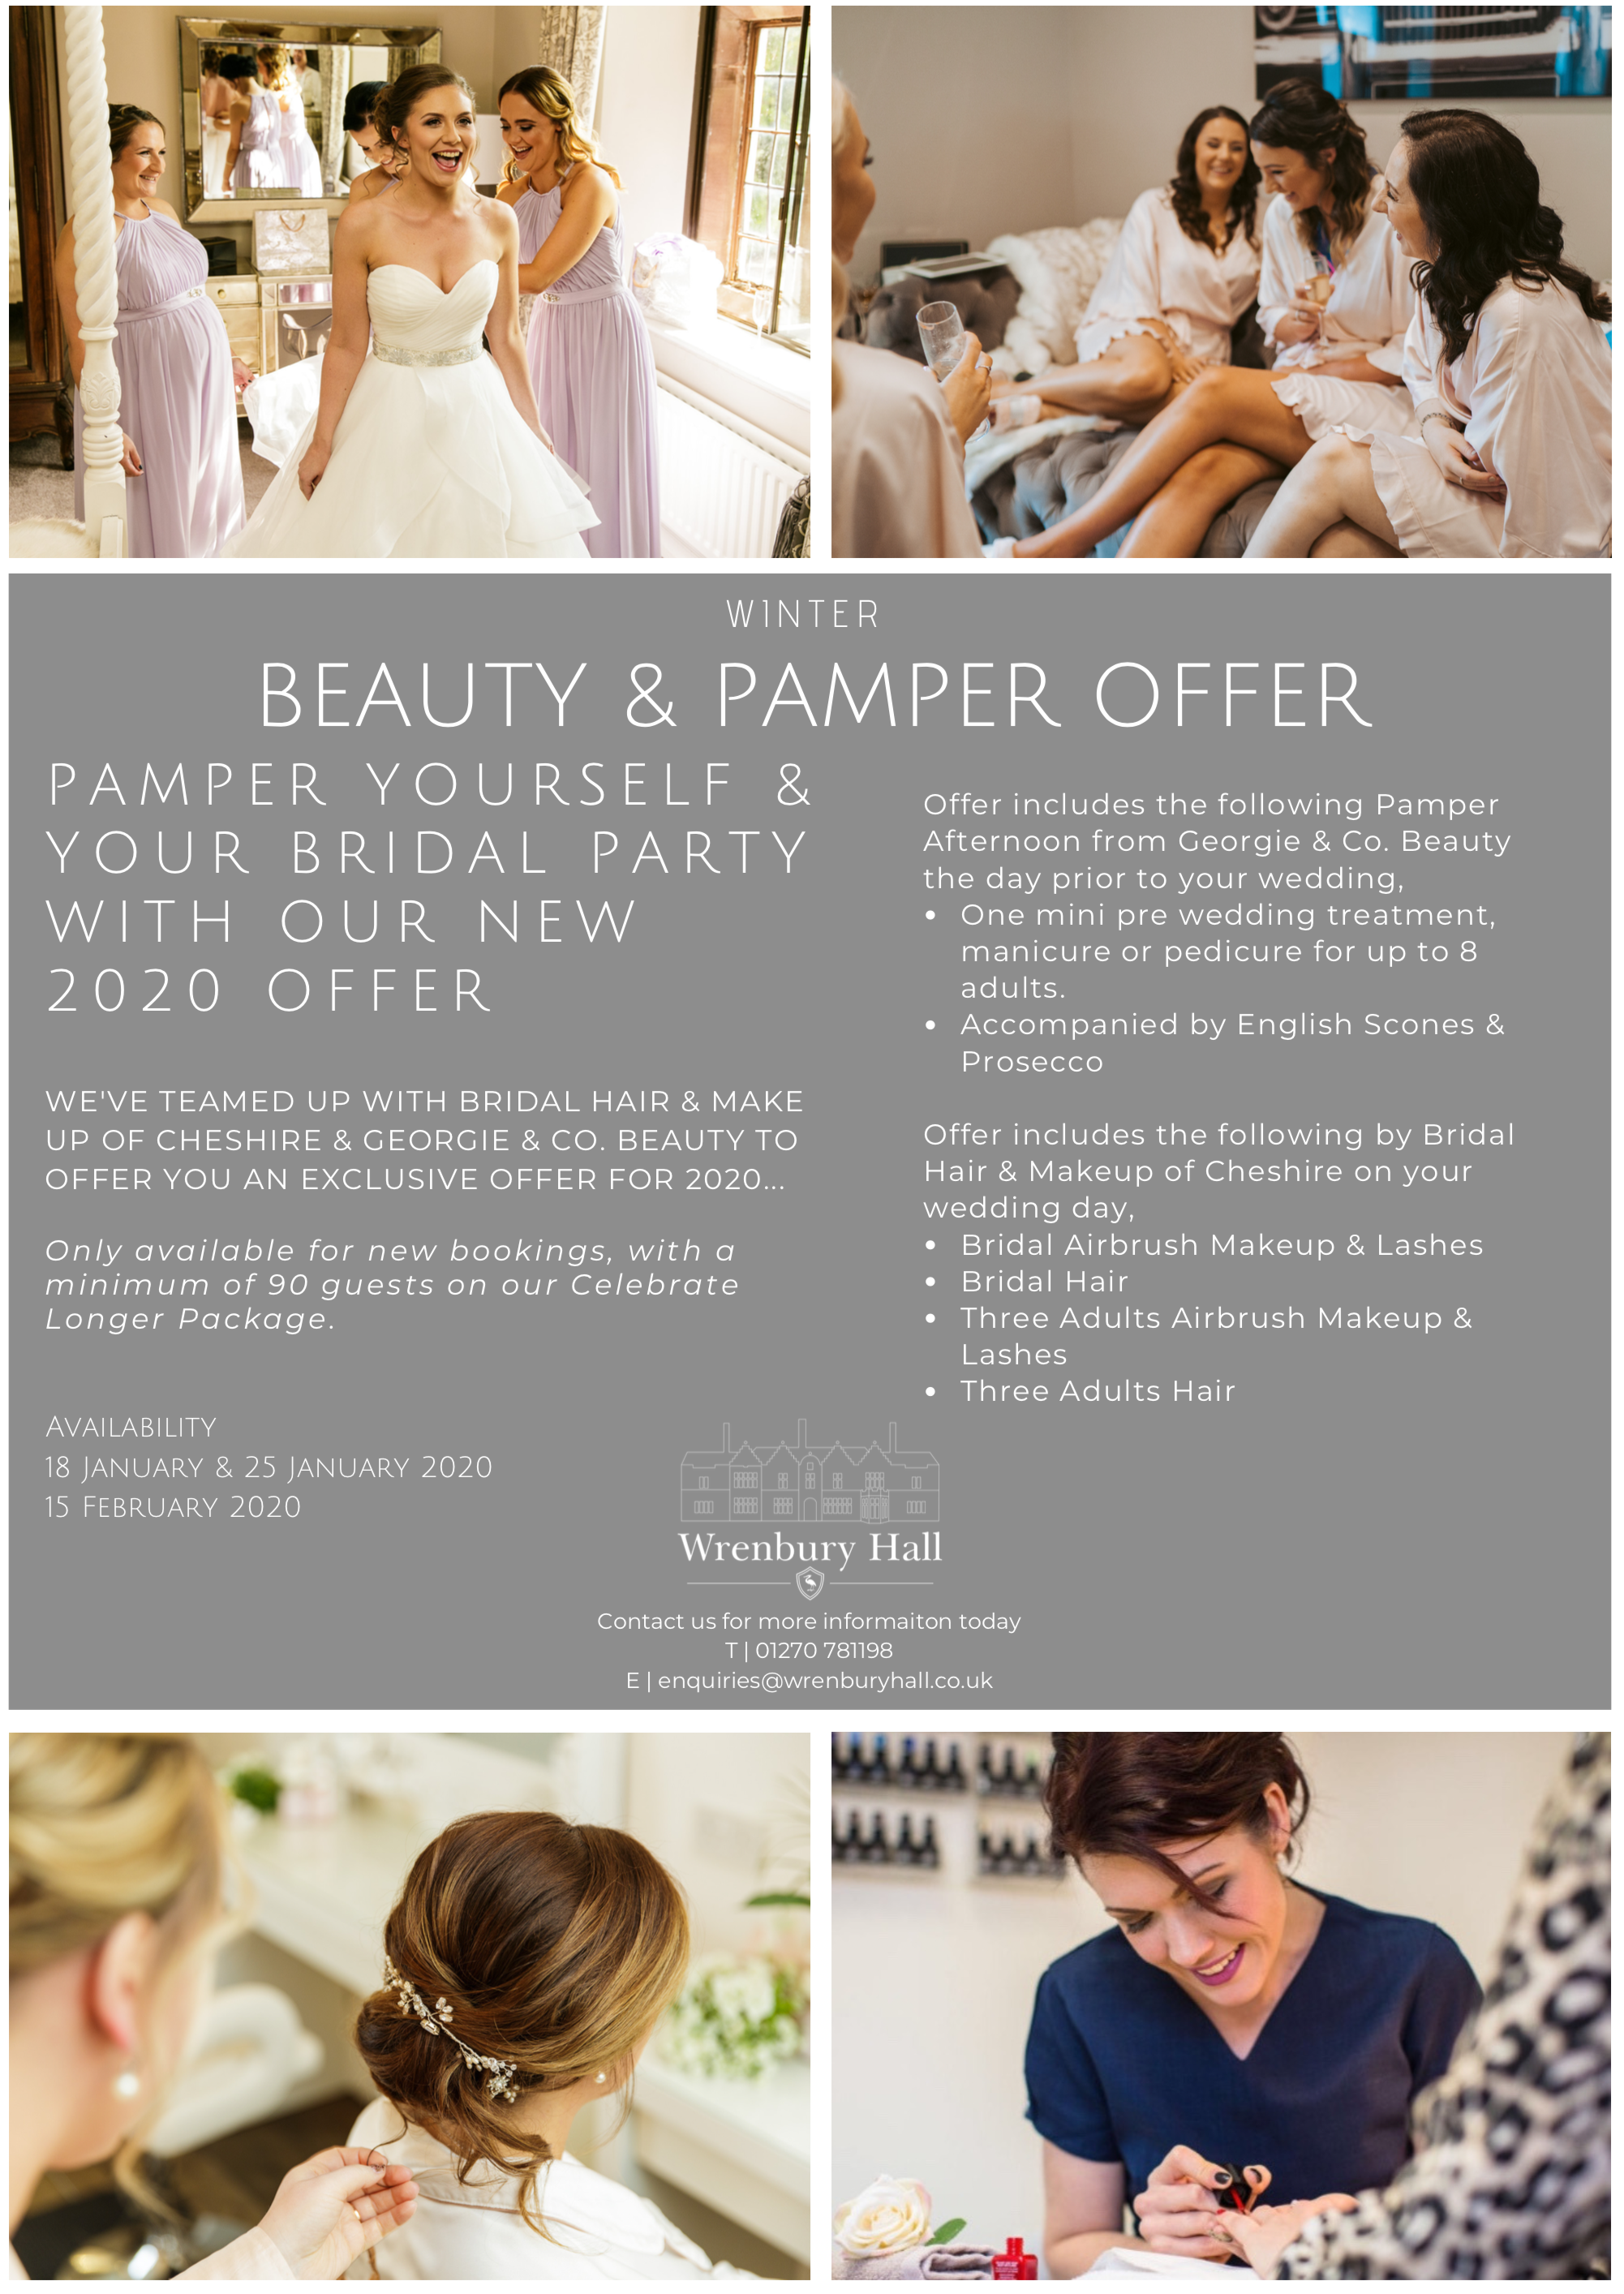 Beauty & Pamper Offer 2020.png